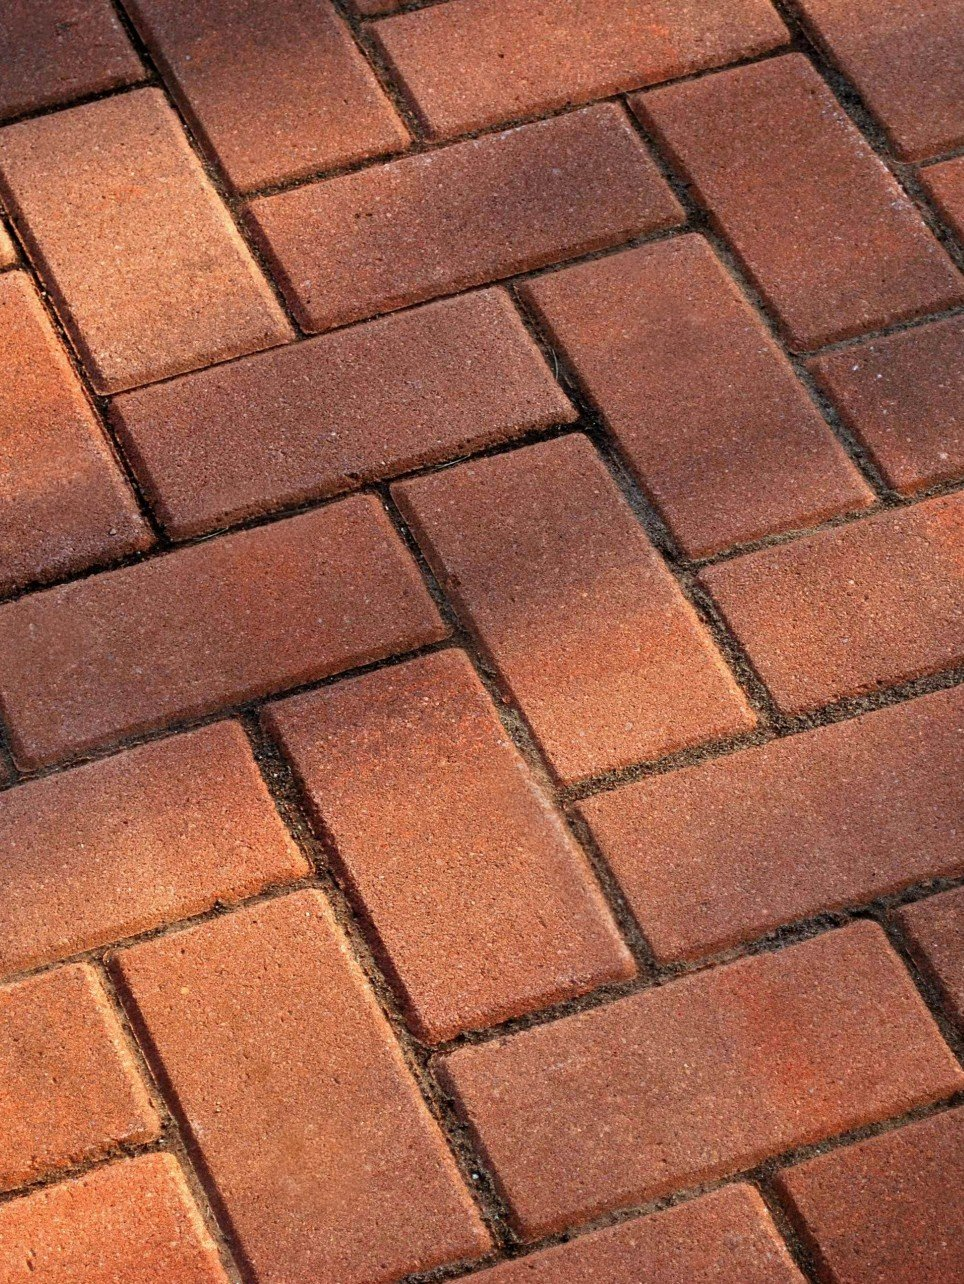 Block Paving Companies Roughley